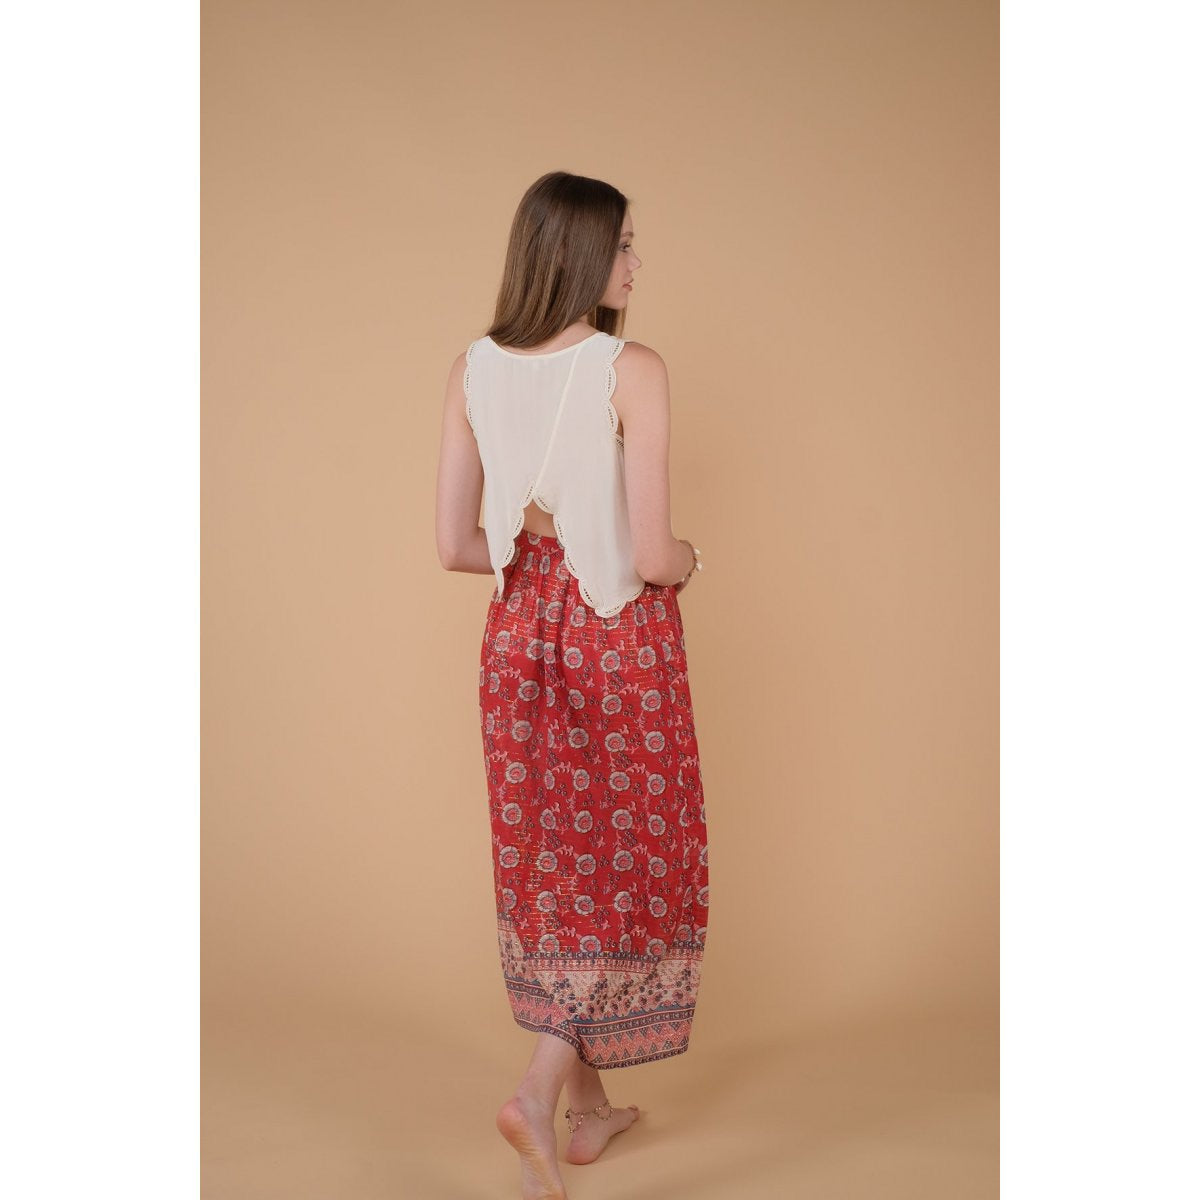 Skirt Mimila Red Flowers